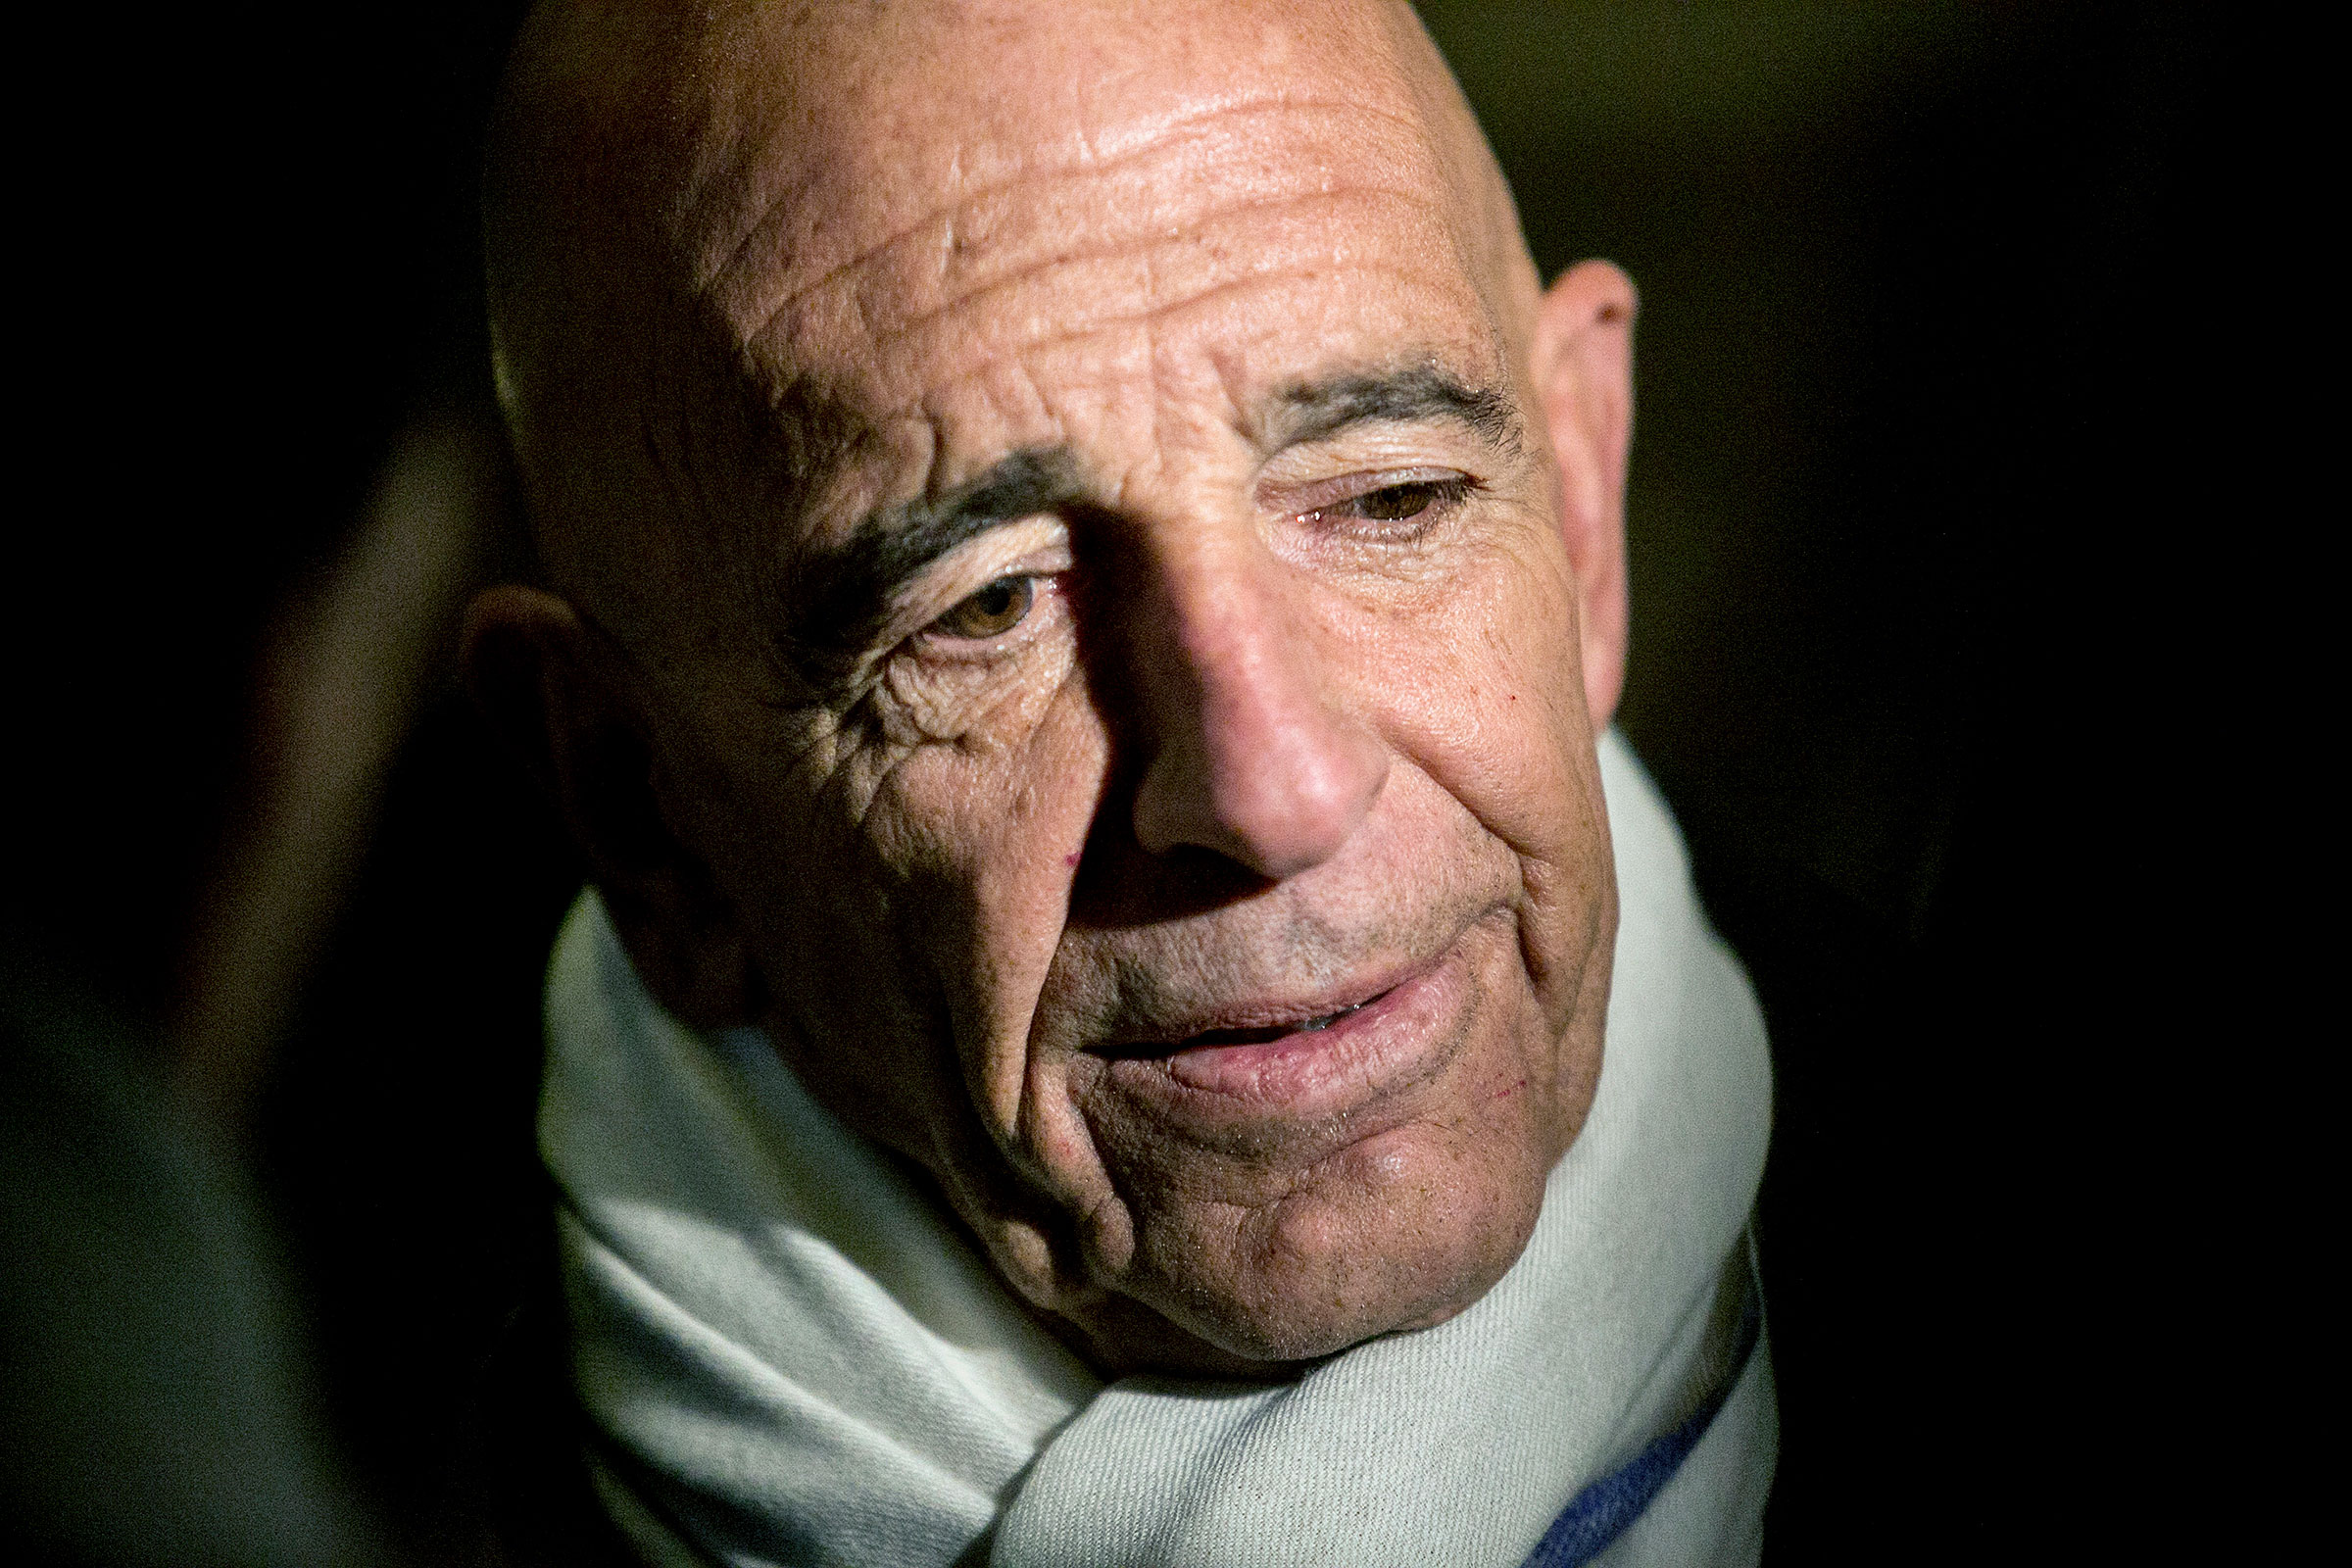 Thomas Barrack, then-chairman of President Donald Trump's inaugural committee, talks to reporters in the lobby of Trump Tower in New York on Jan. 10, 2017.